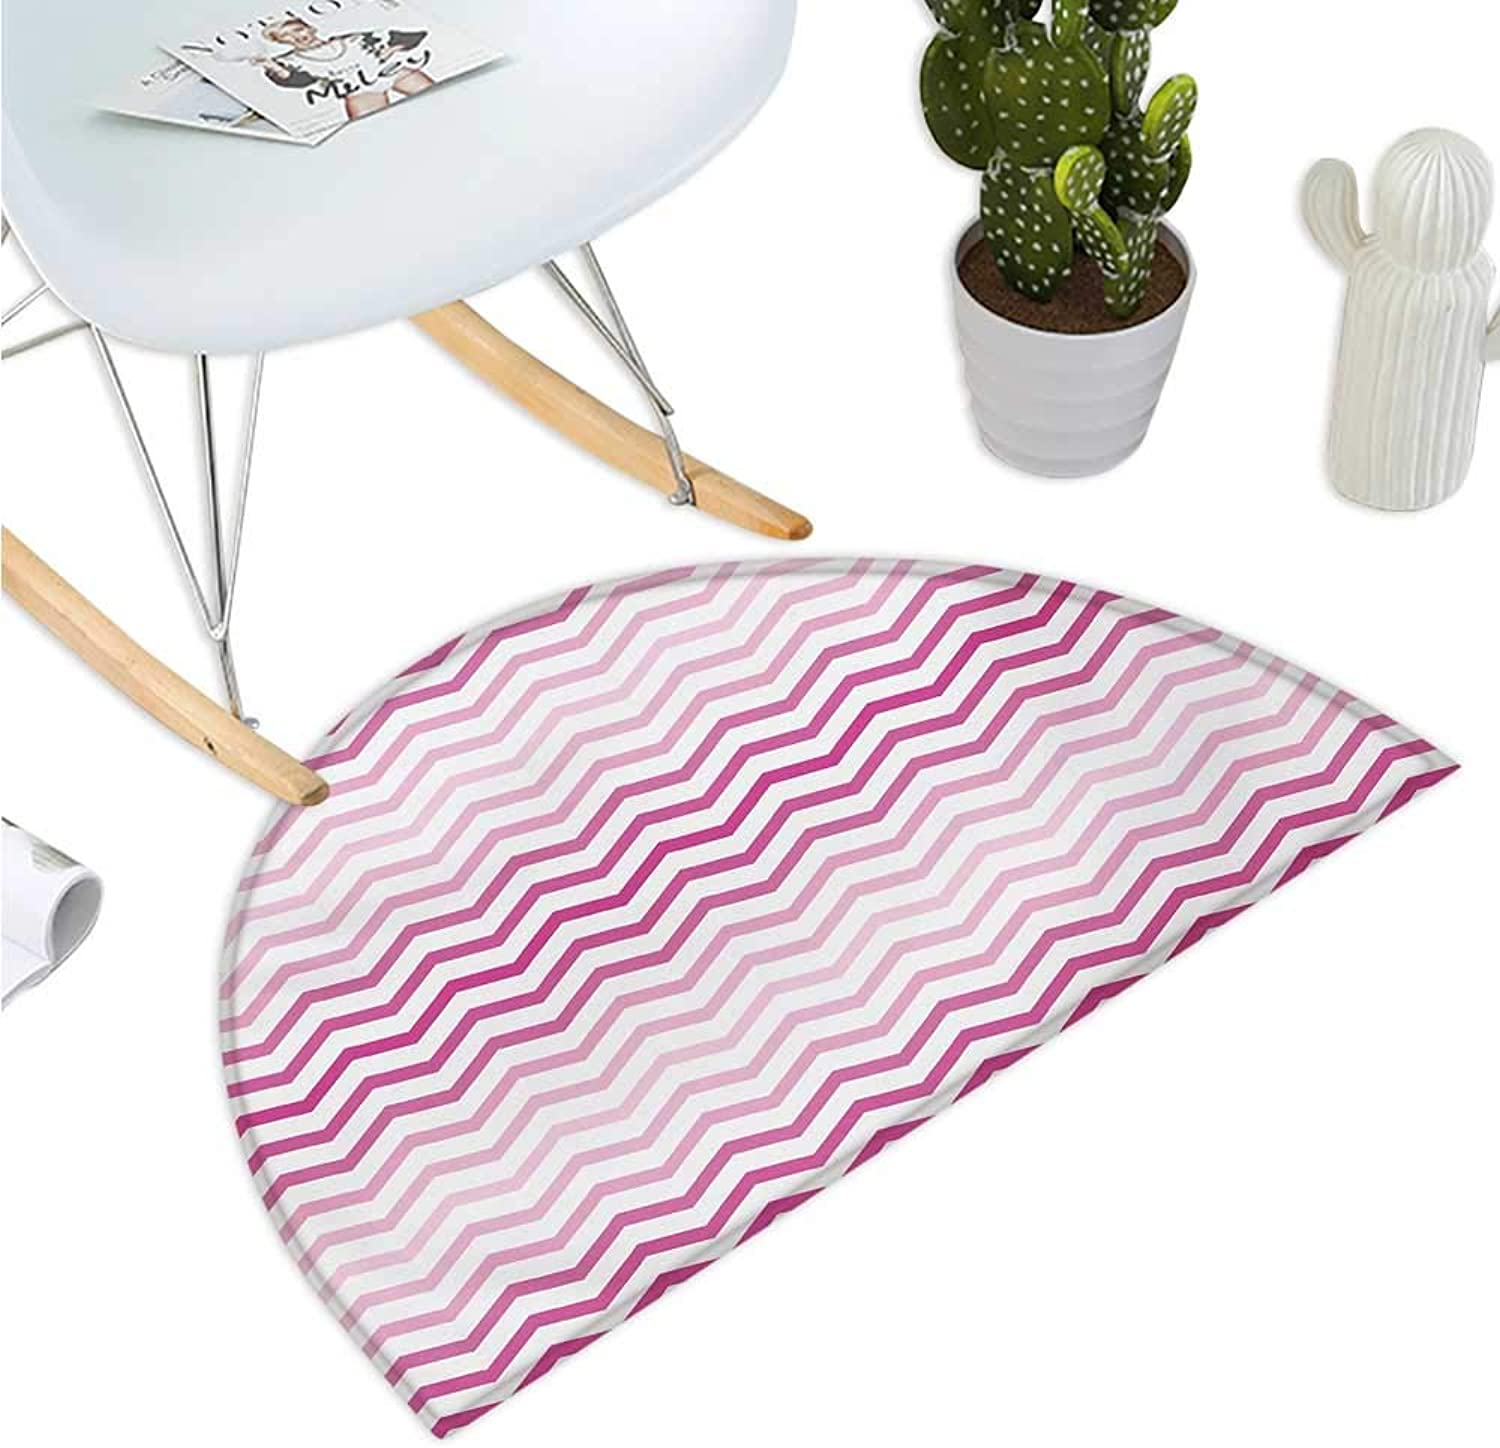 Pale Pink Half Round Door mats Chevron Zigzag Pattern with Twisted Parallel Lines in Vibrant Tones Graphic Bathroom Mat H 47.2  xD 70.8  Magenta White